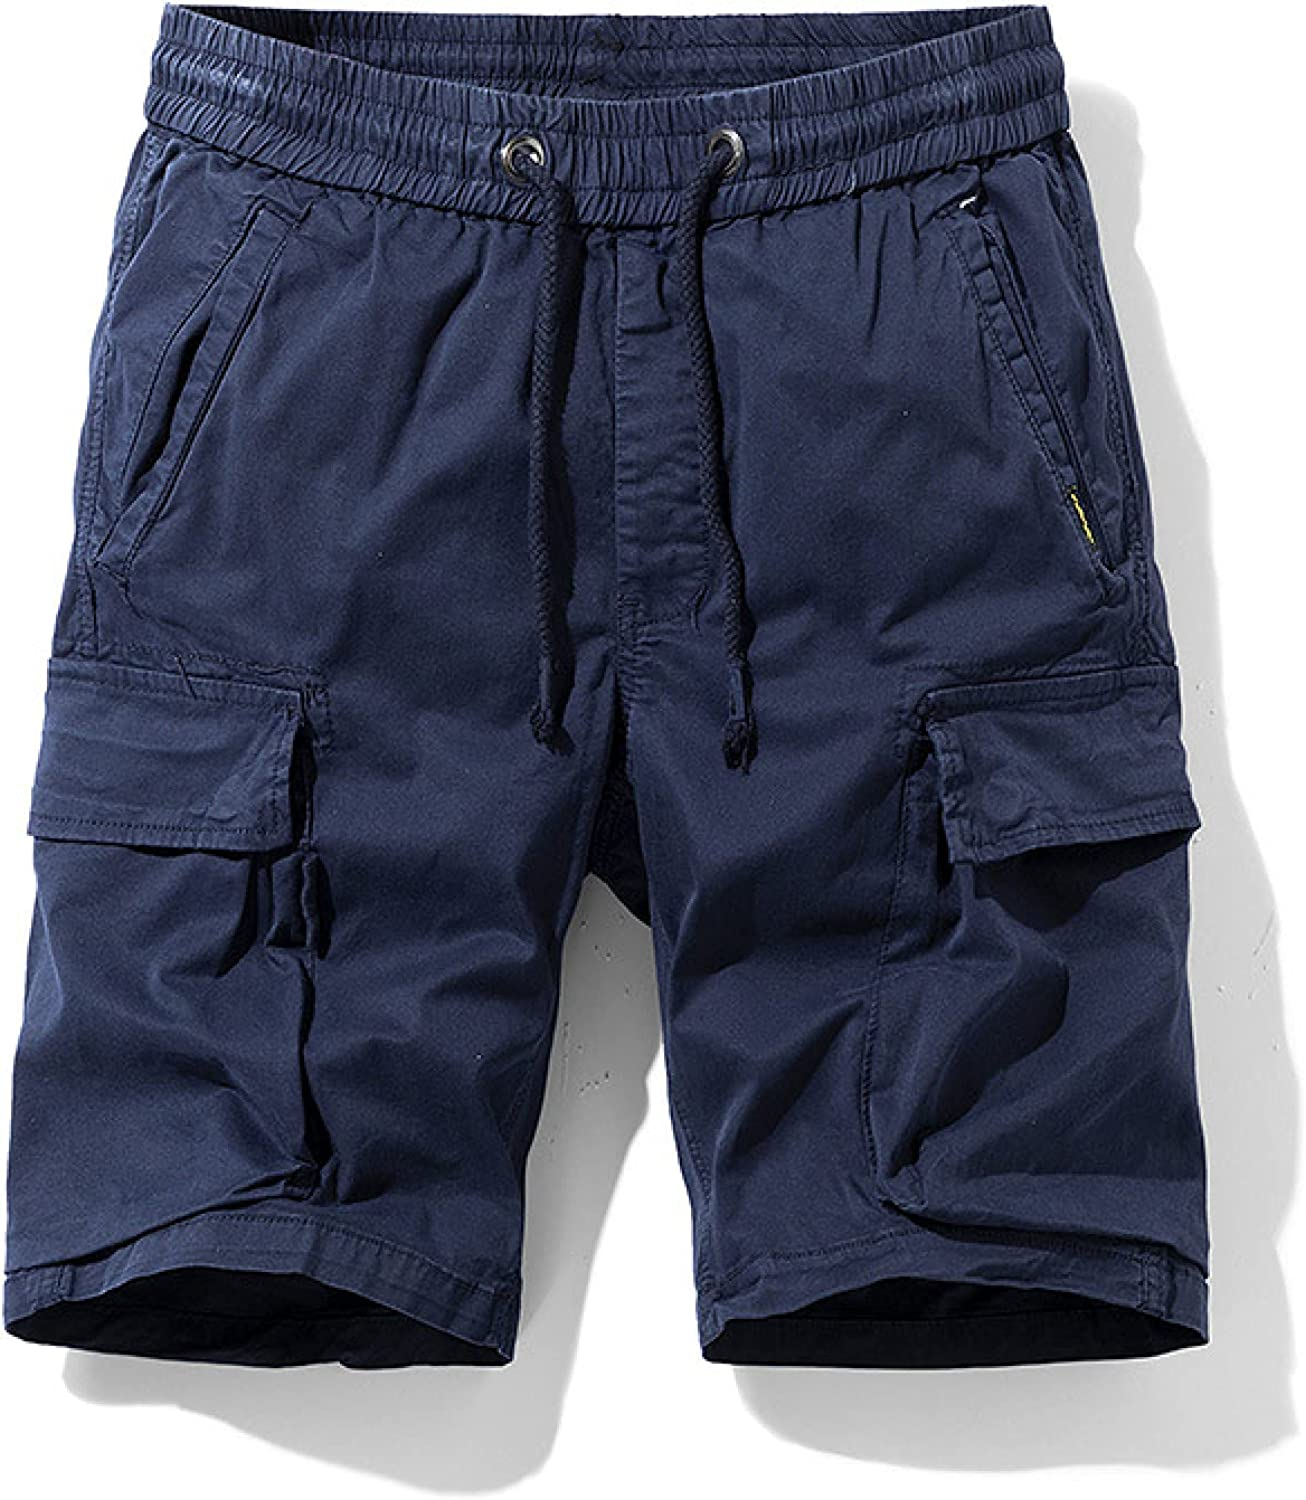 Wantess Men's Fashion Trend Shorts with Drawstring Summer Casual Comfortable